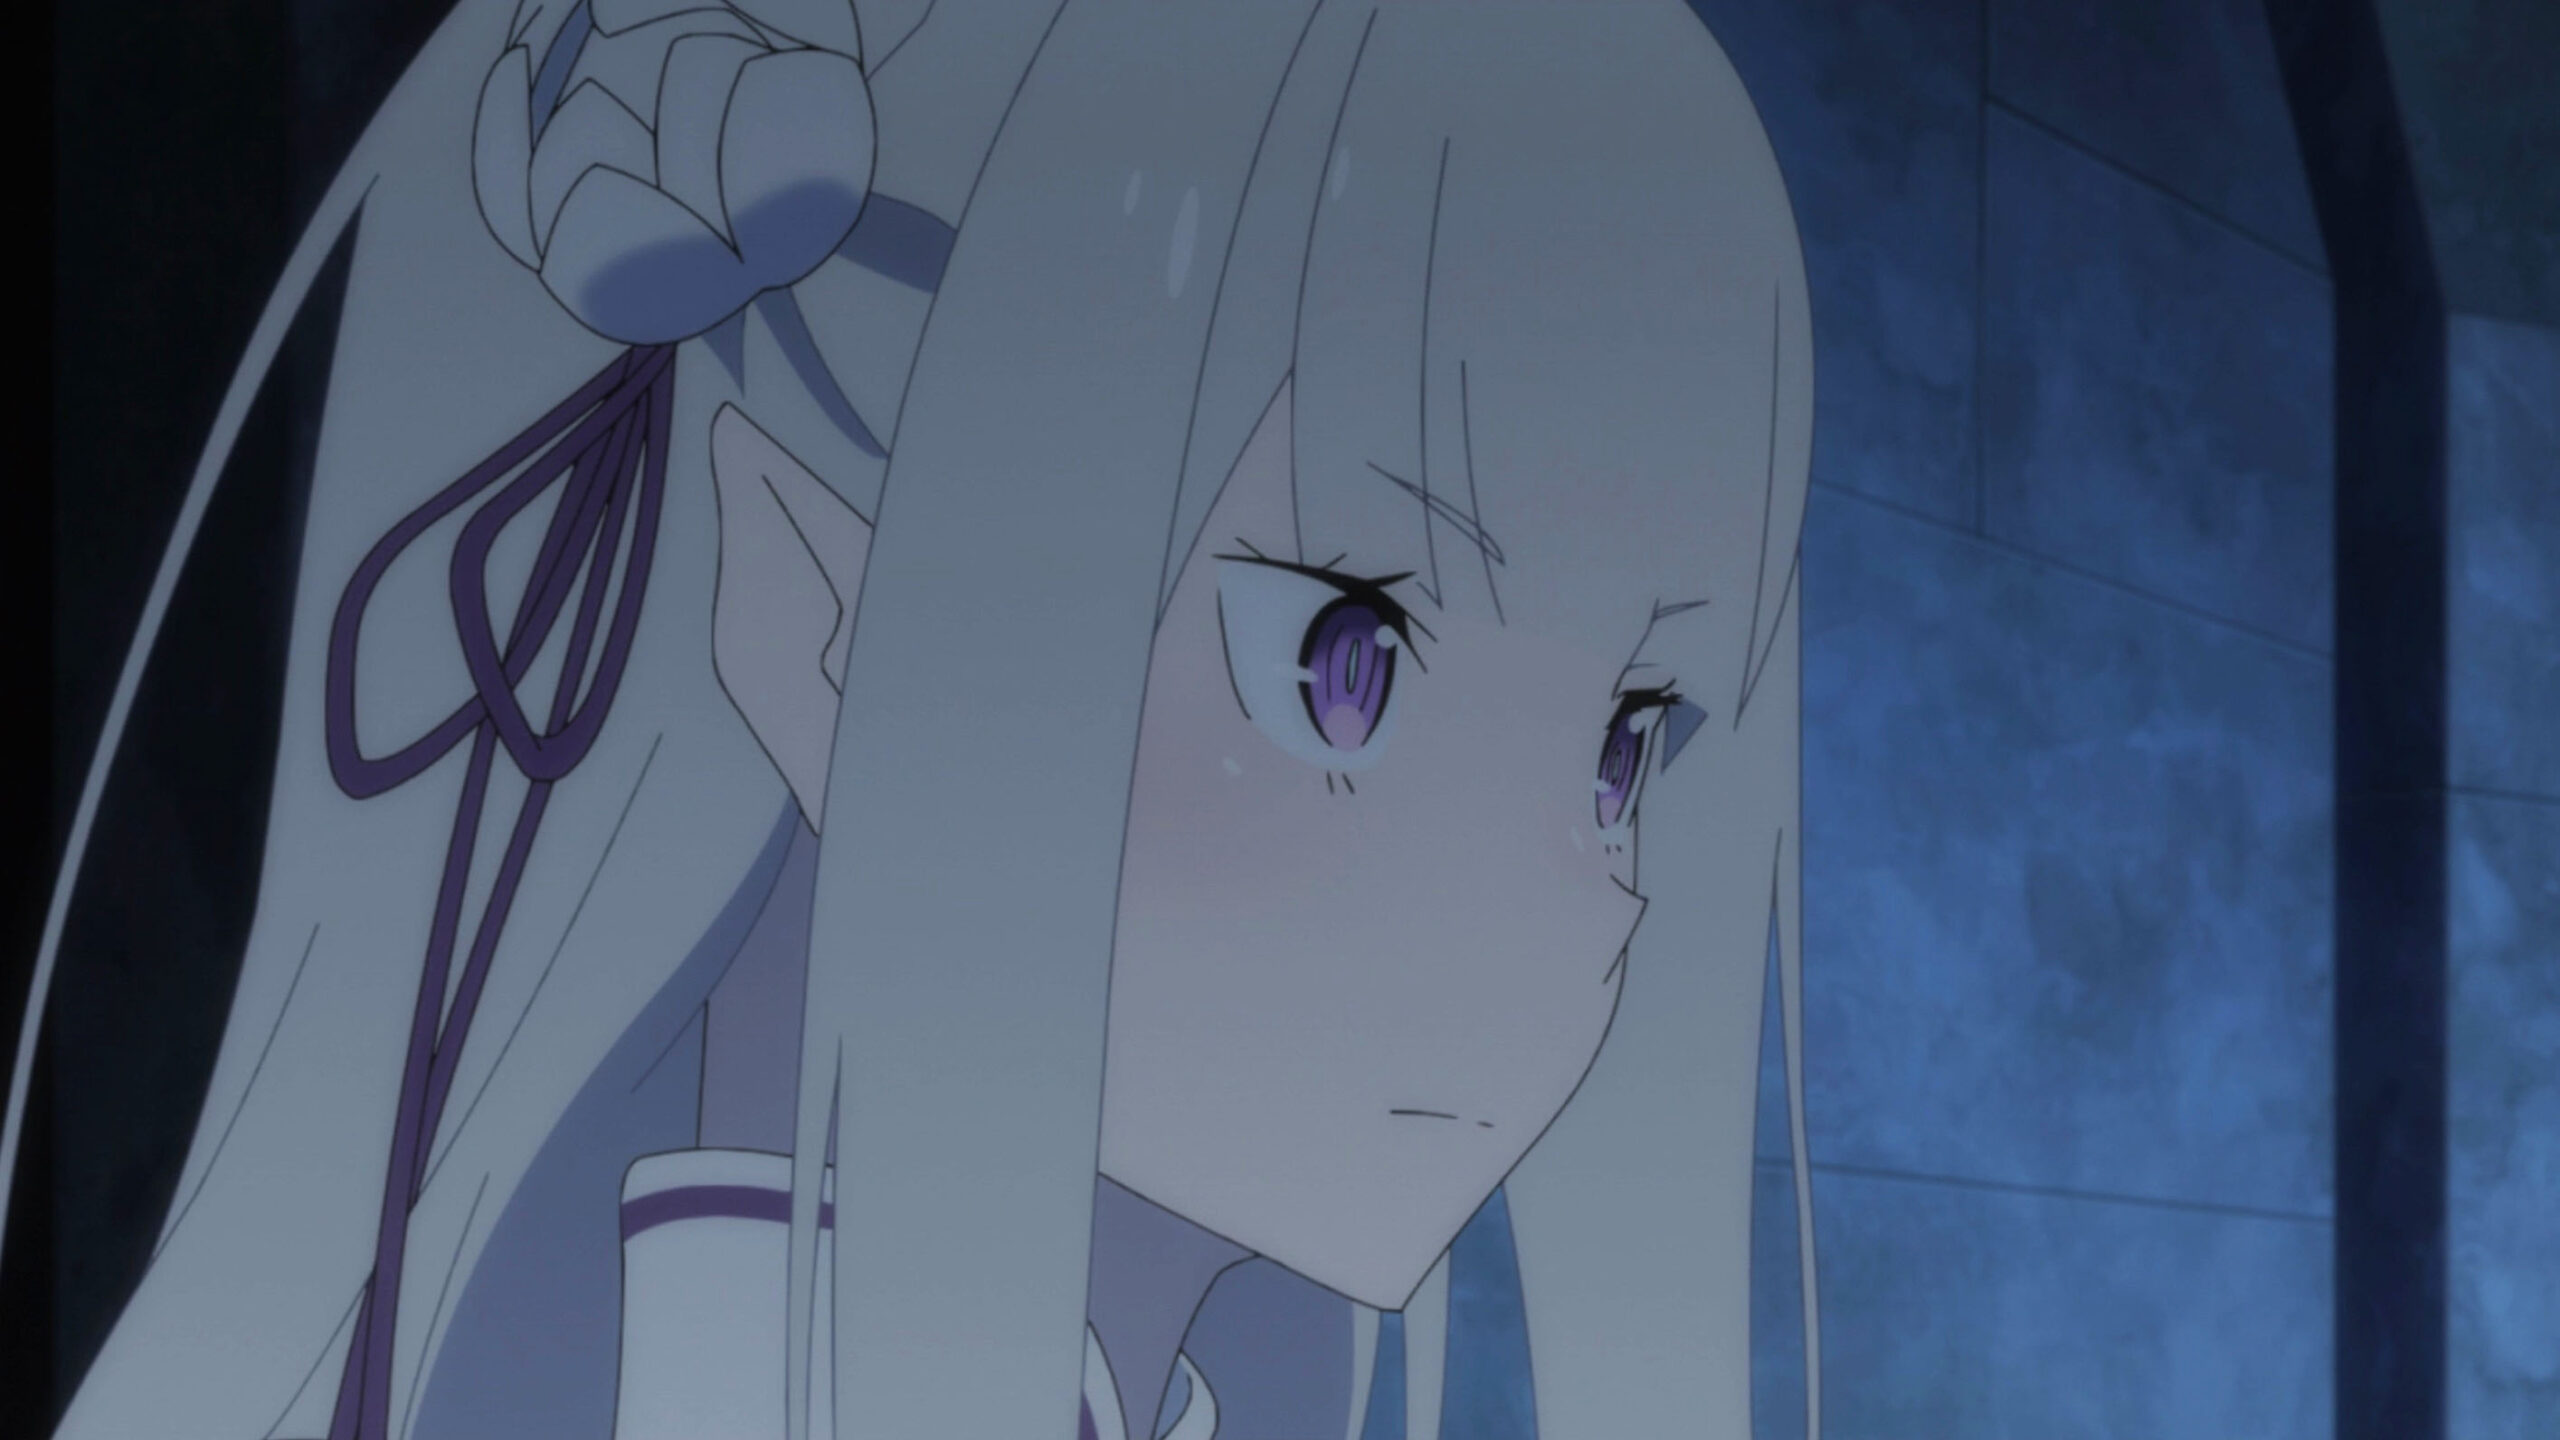 Featured image for Re:ZERO Season 2 Part 2 Episode 49: The Fall of the House of Mathers